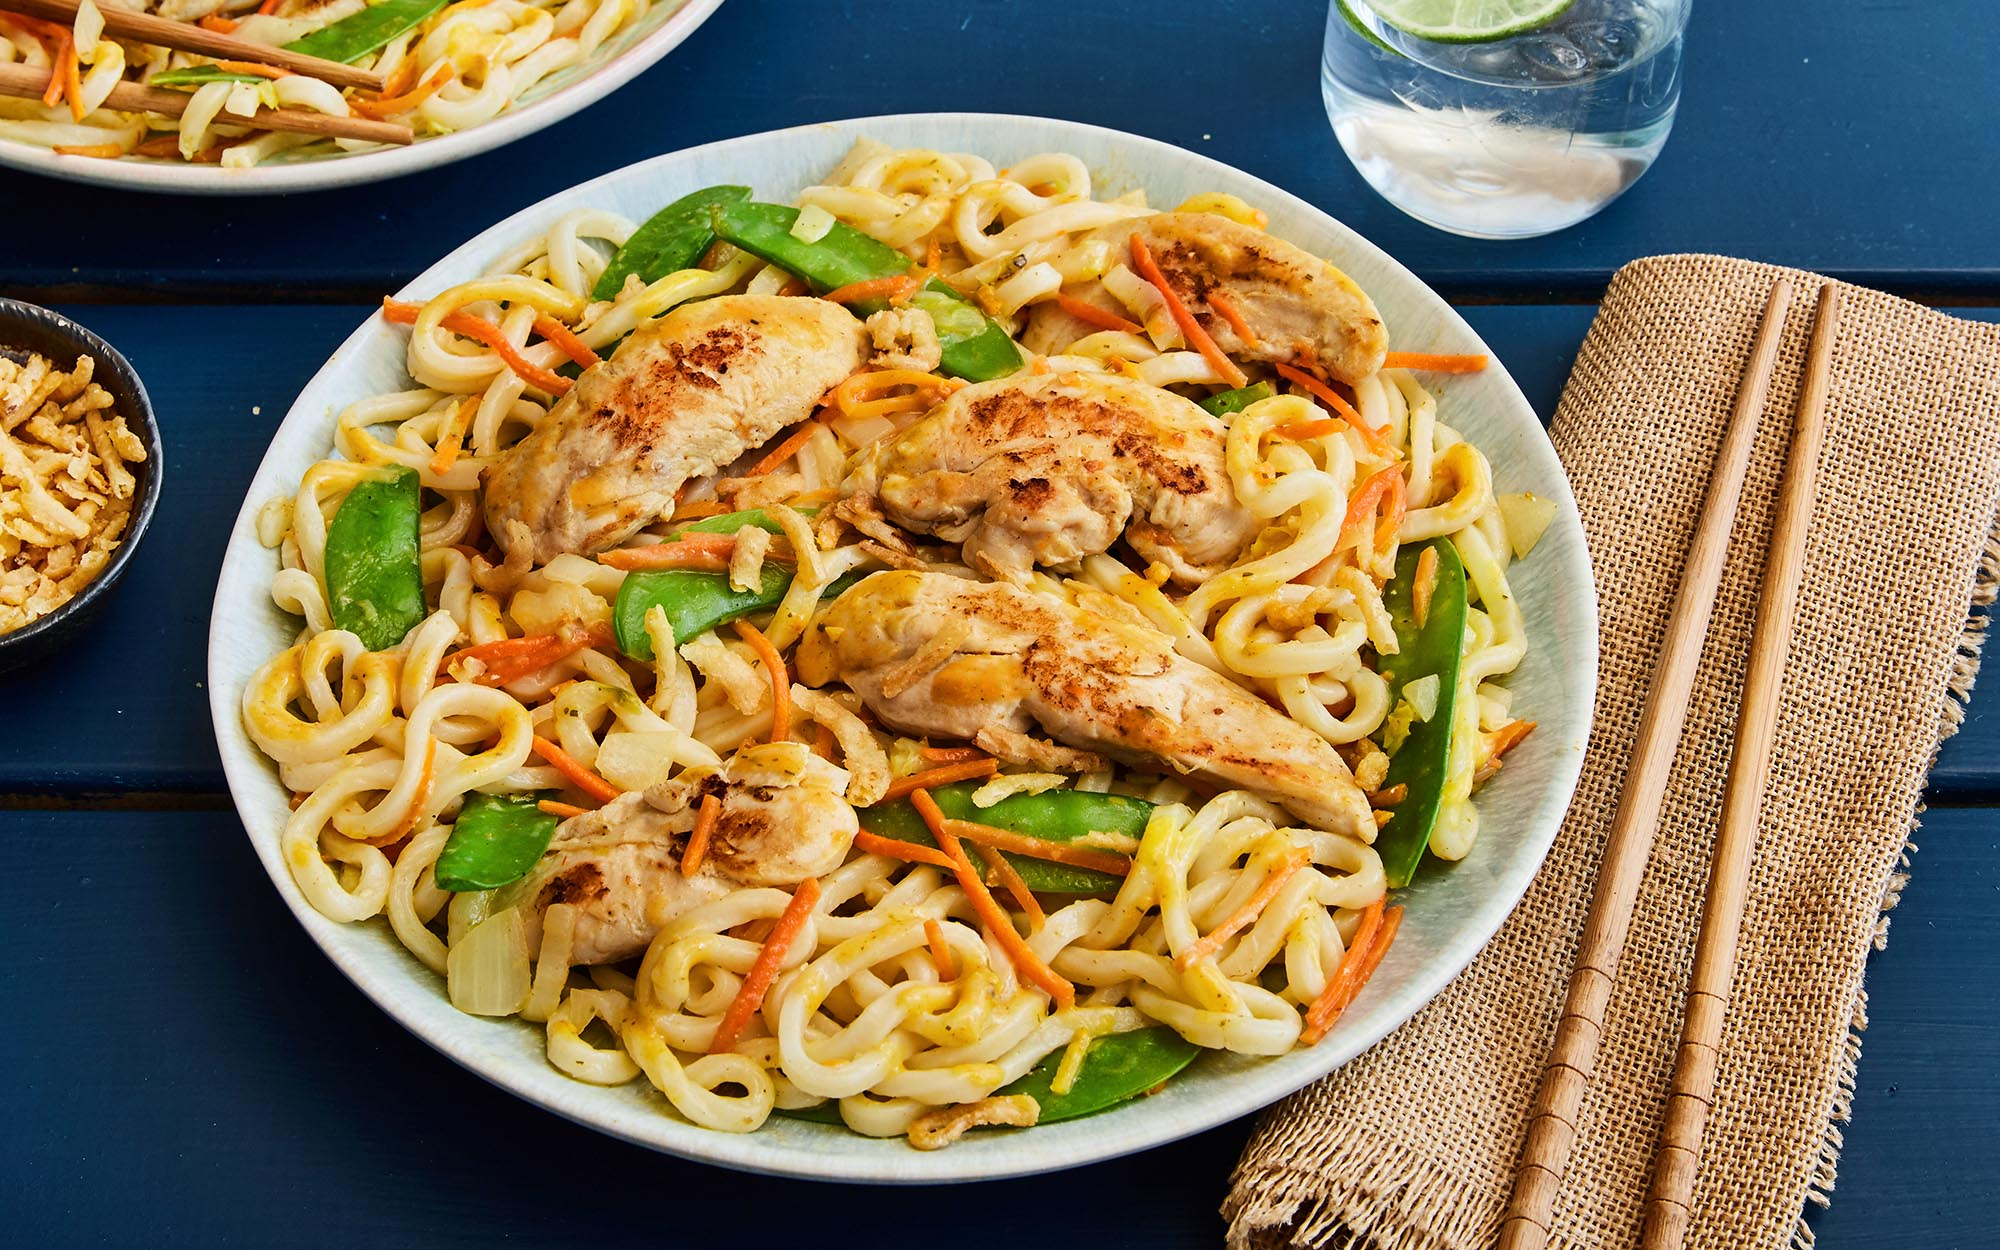 Panang Chicken & Udon Noodle Stir-fry